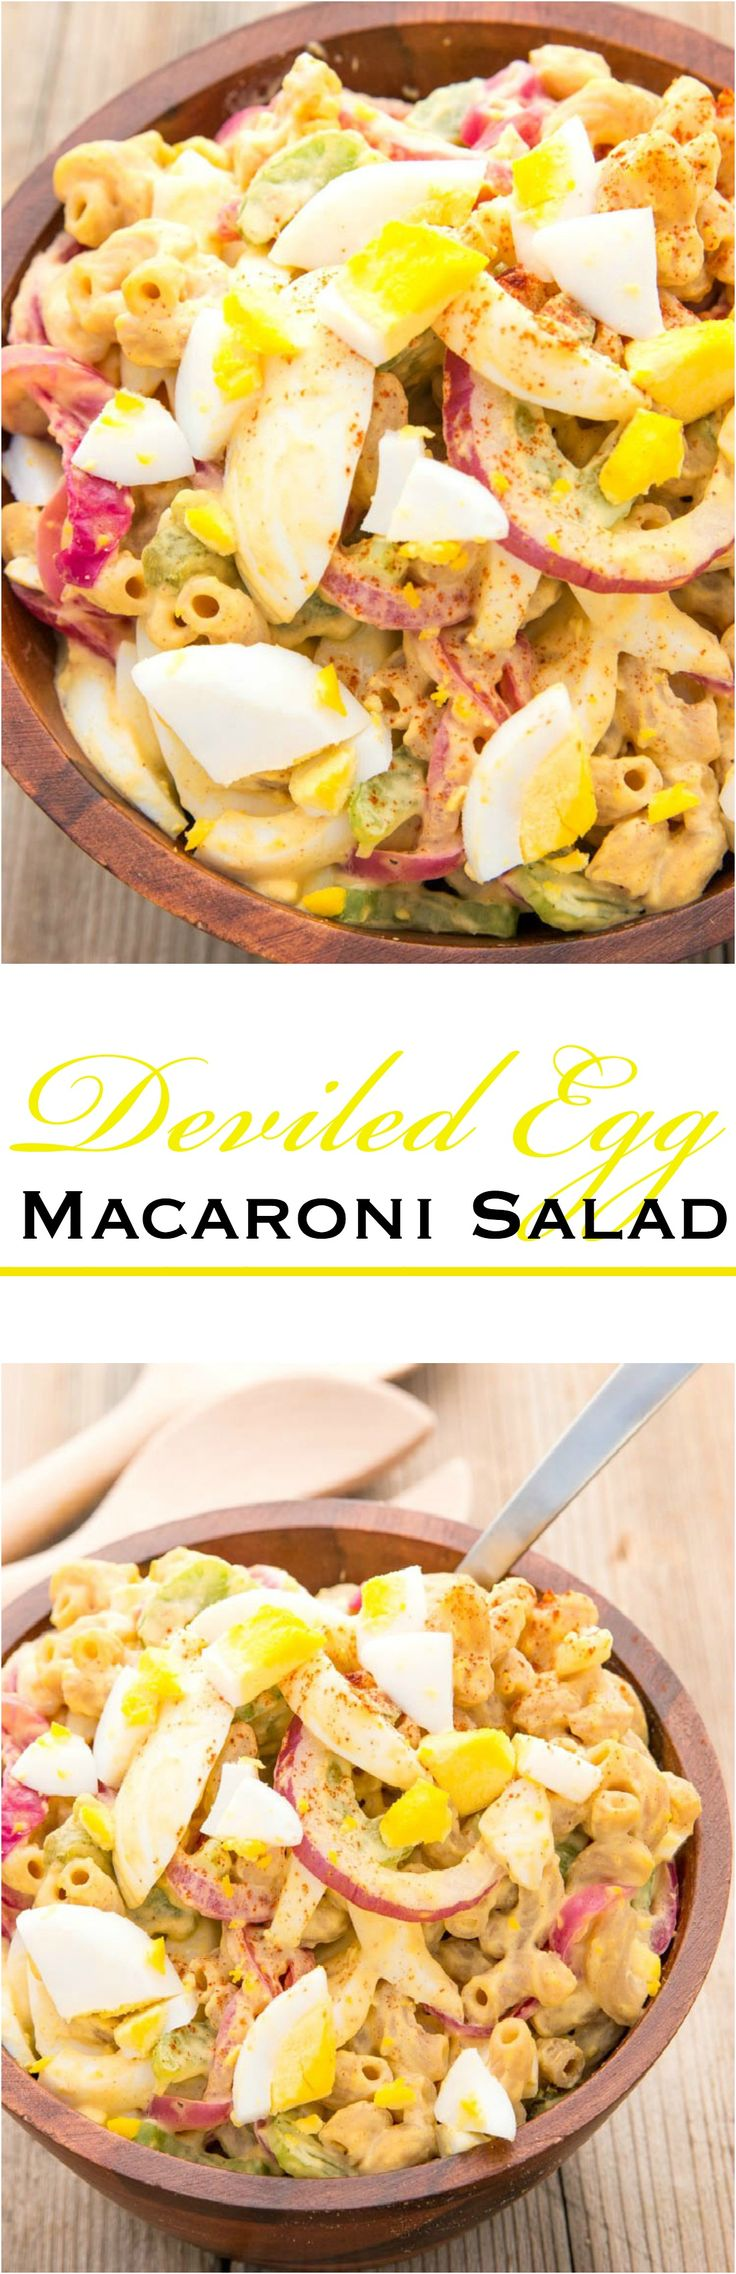 "Don't be fooled by the ""devil,"" Deviled Egg Macaroni Salad lets you enjoy two yummy foods in one."